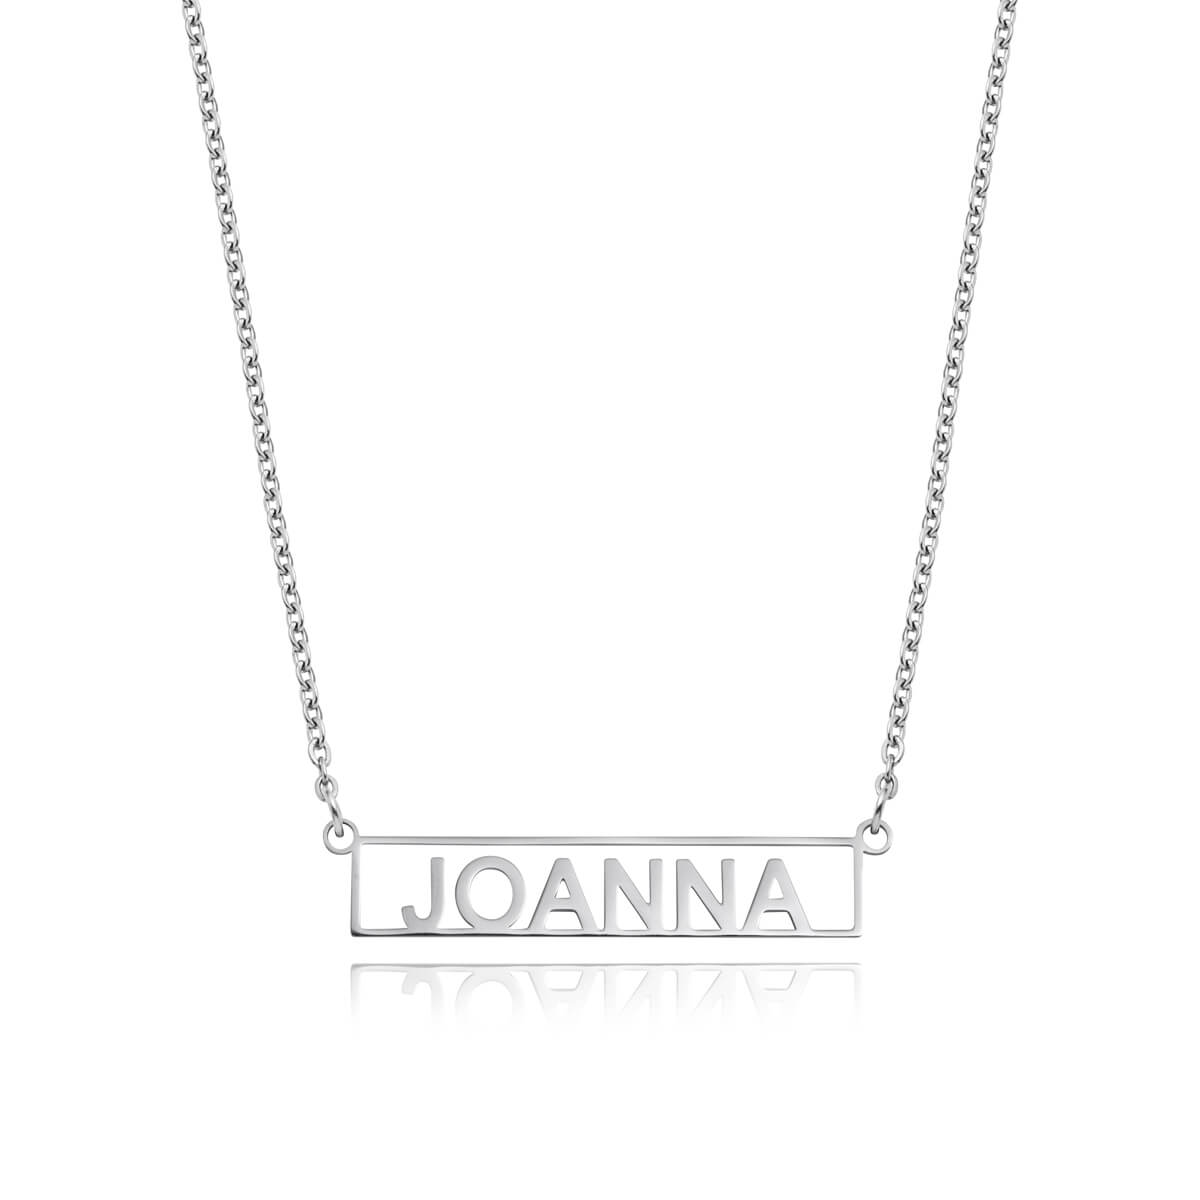 Framed Name Necklace (Silver)